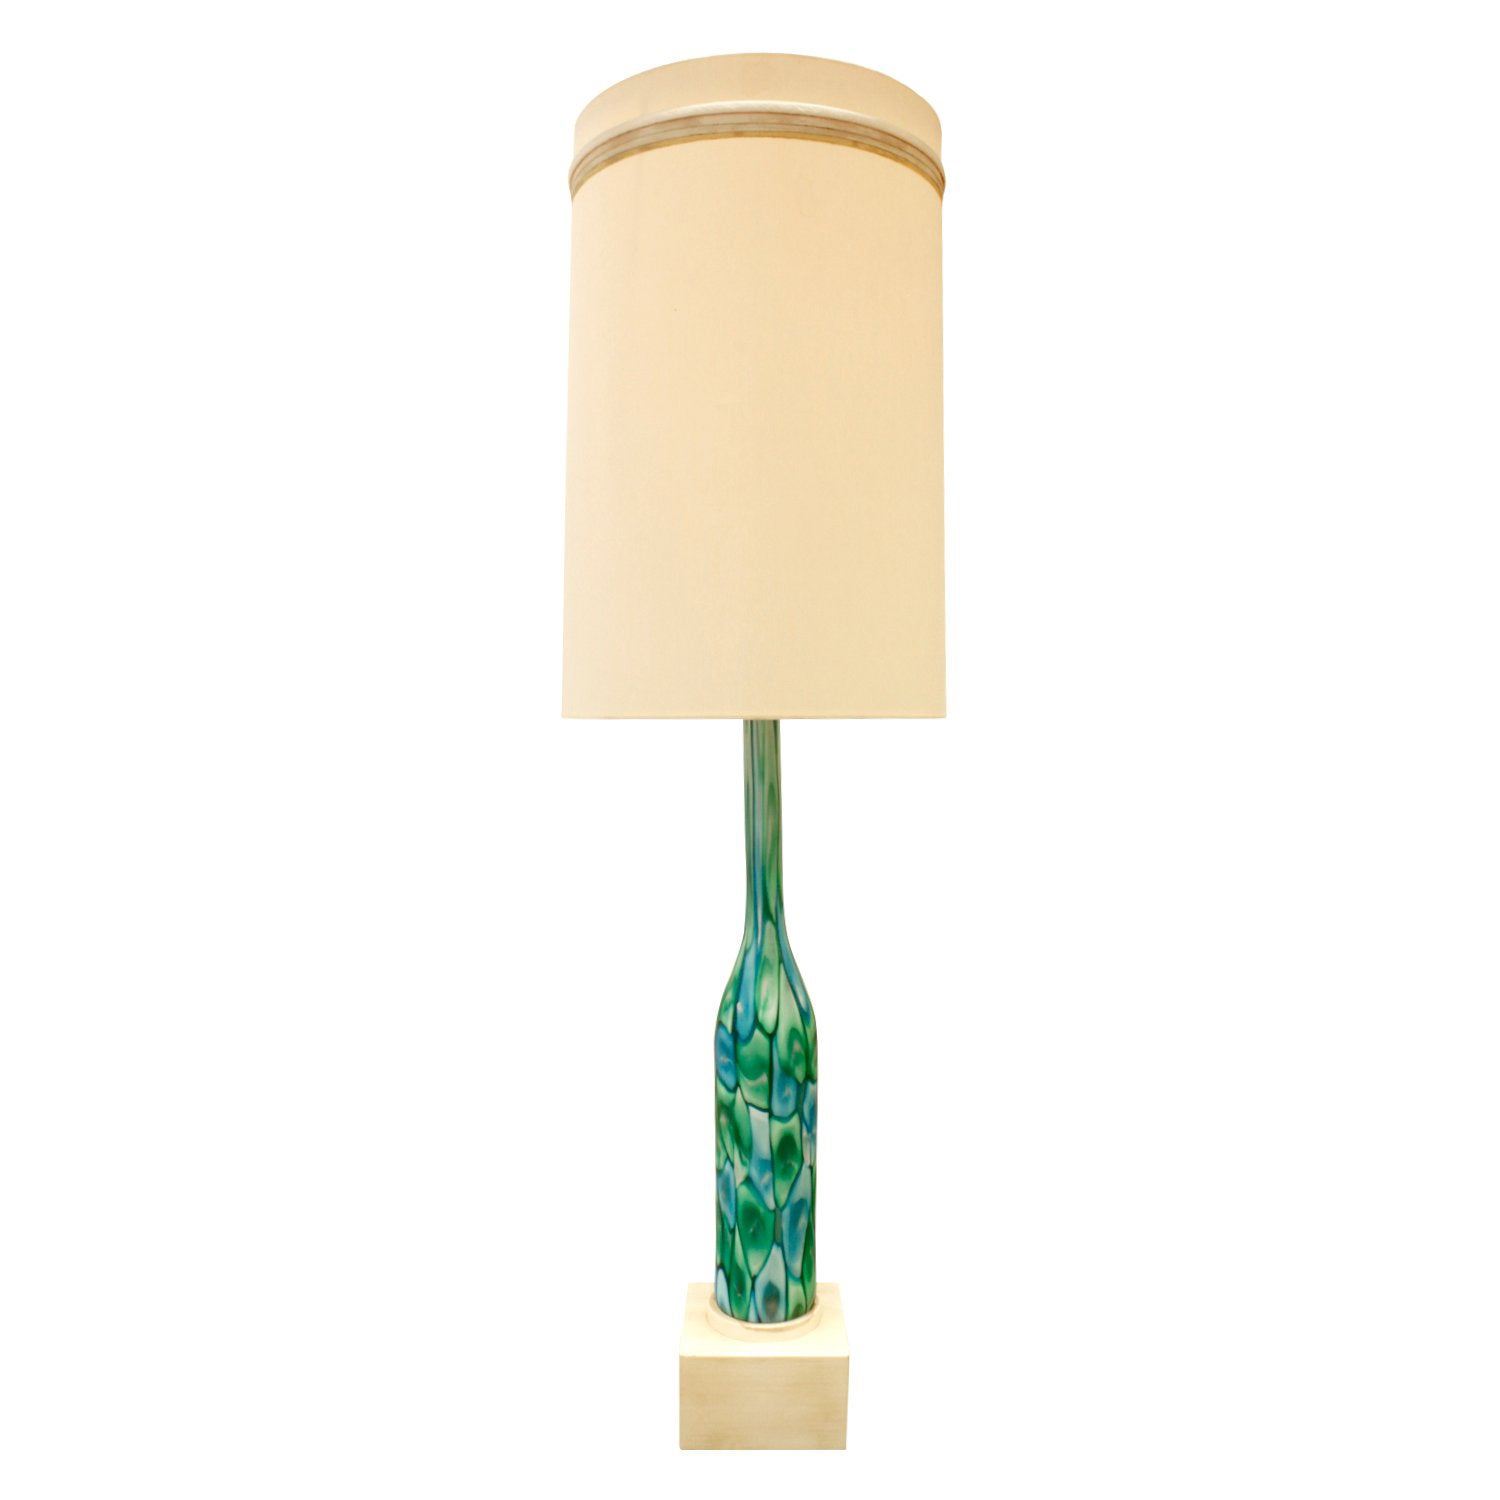 Fratelli Toso Large Table Lamp with Green and Blue Murrhines, 1950s